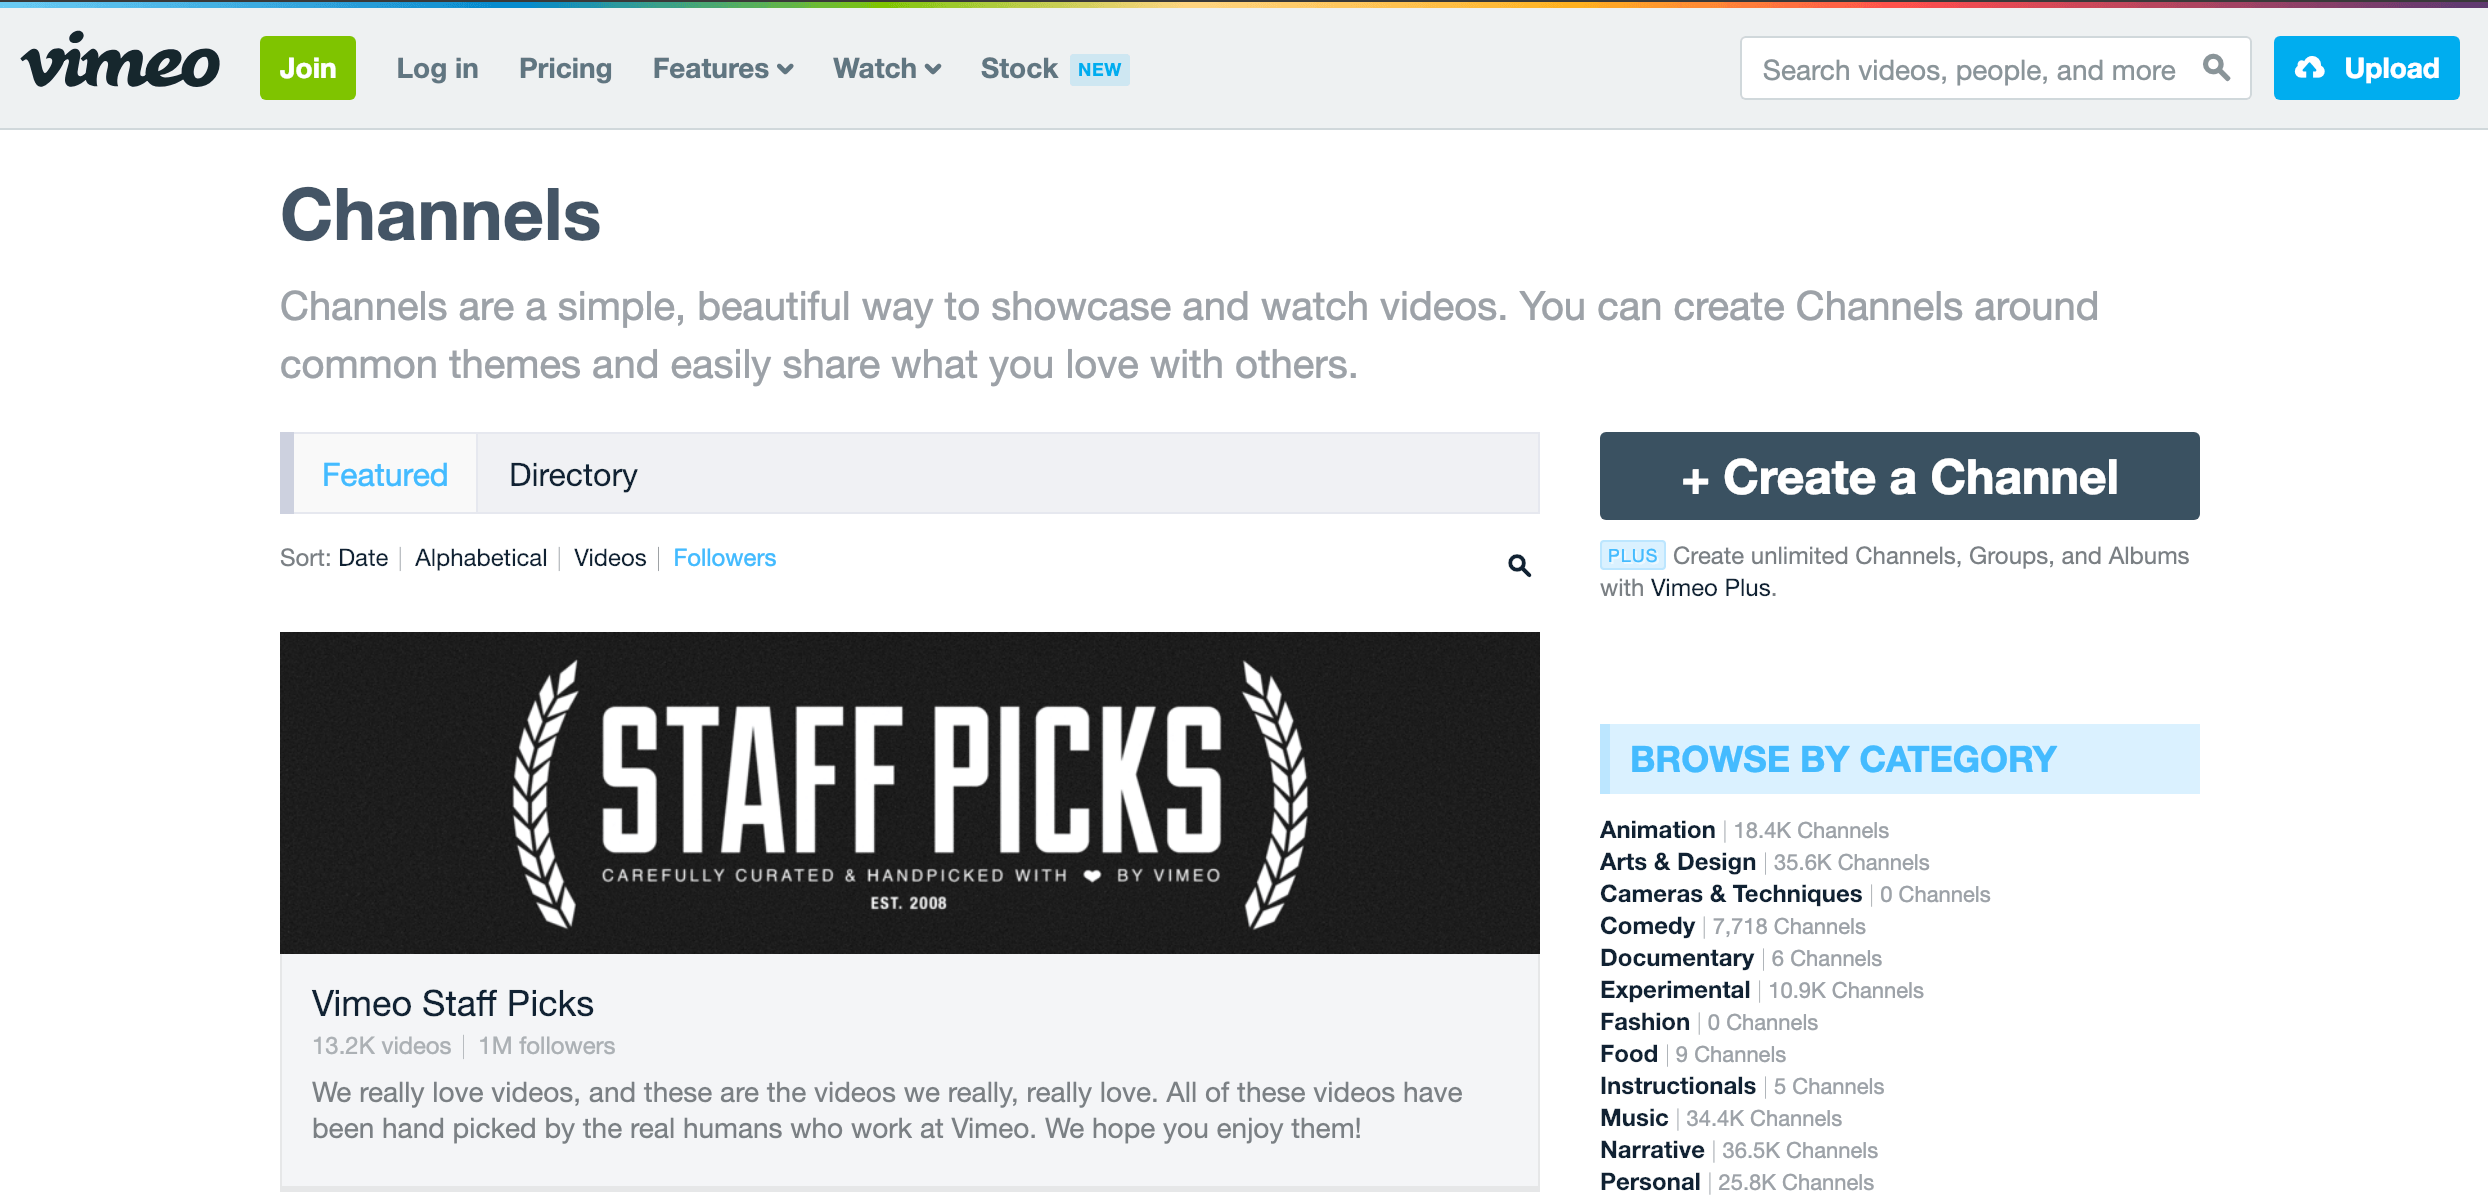 vimeo channels image